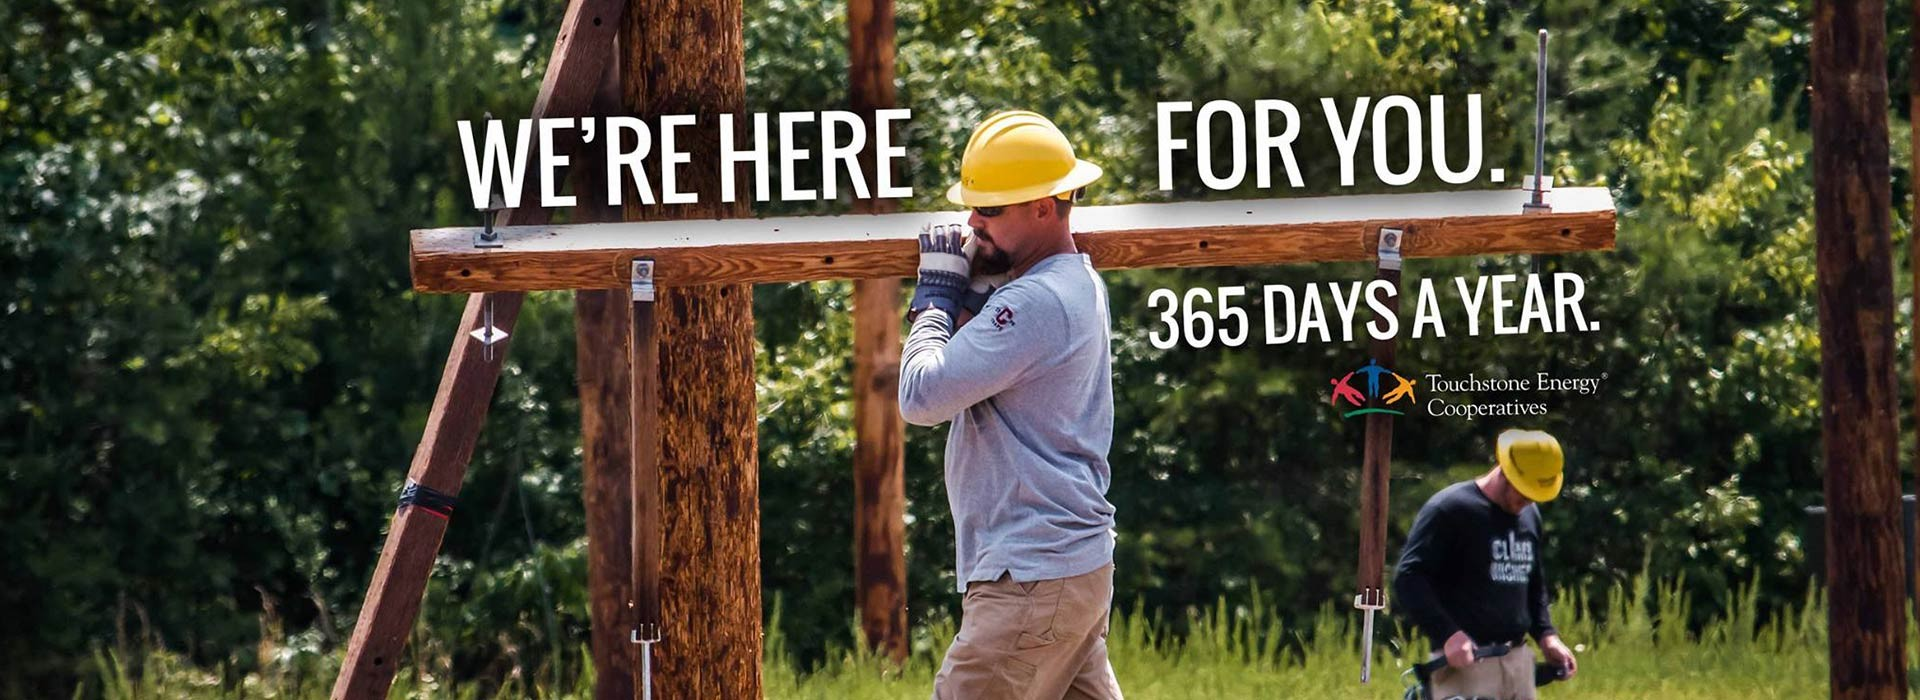 We're here for you. 365 Days a Year. (Man working on power pole)